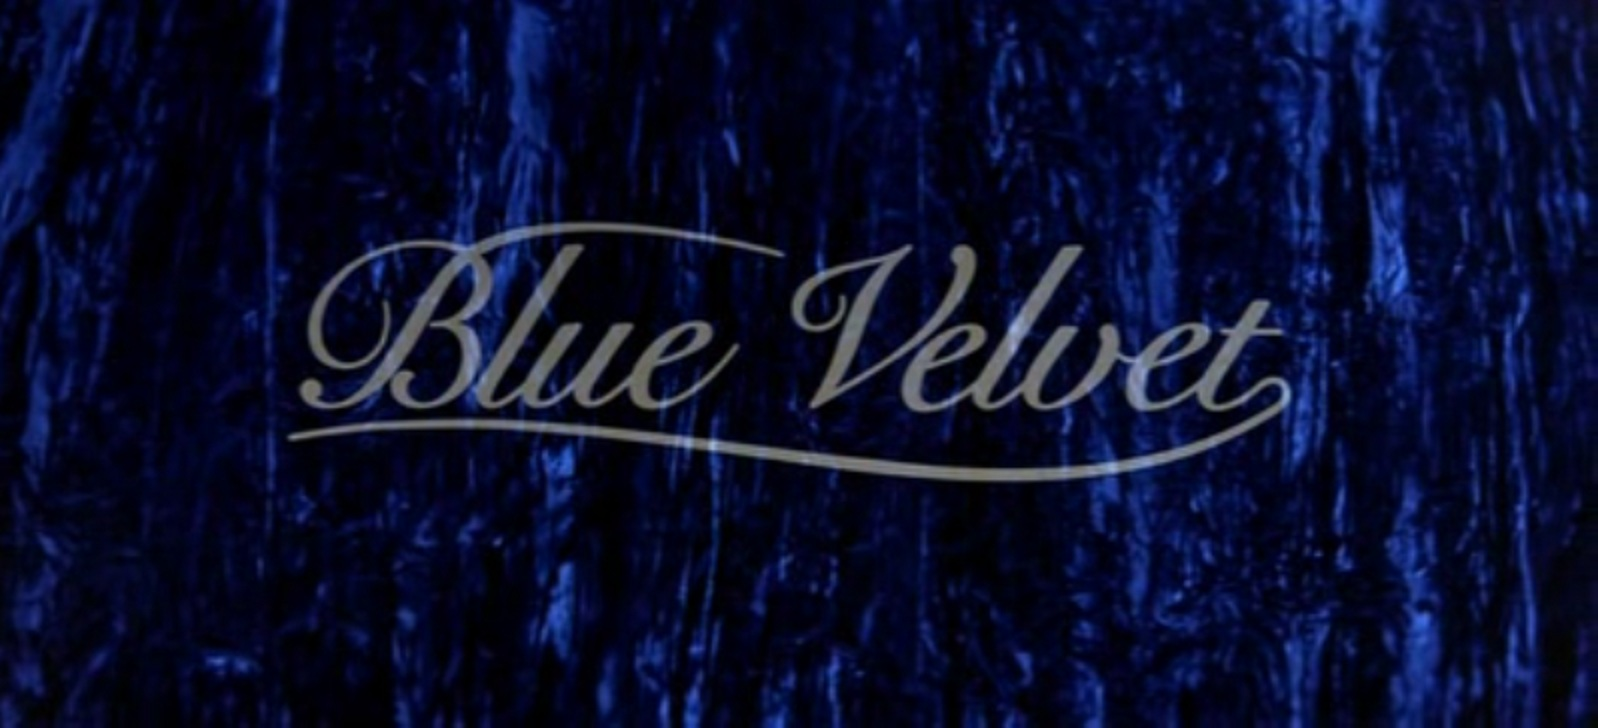 filmicability with dean treadway film 145 blue velvet